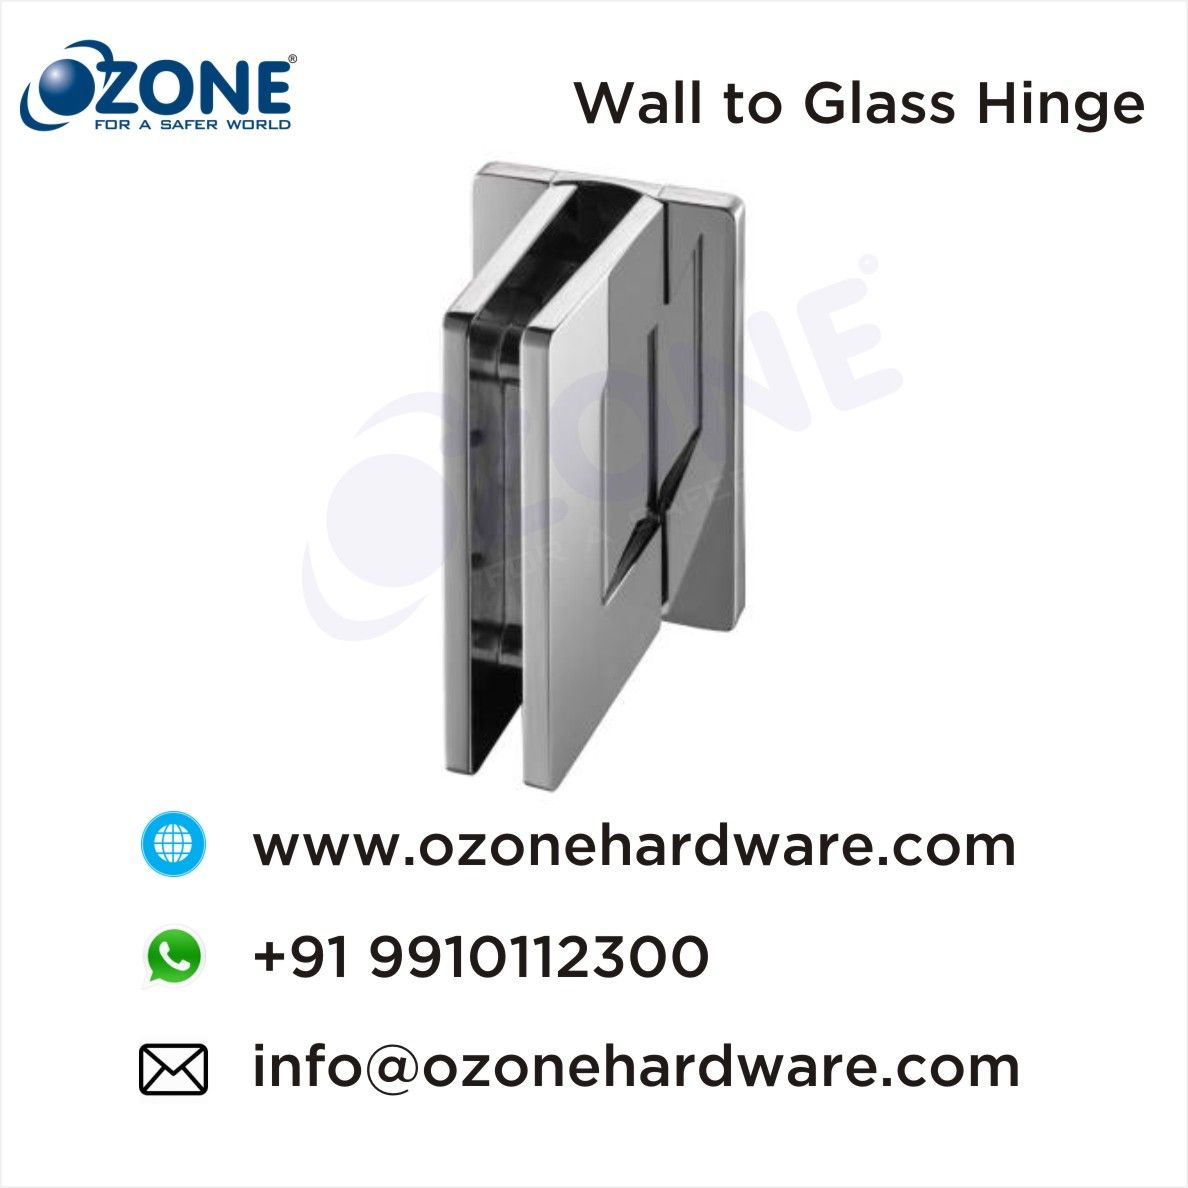 Wall To Glass Hinge With Cover Plate Showerroomhardware Showerroomideas Showercubicles Ozonehardware Glass Hinges Glass Door Lock Glass Door